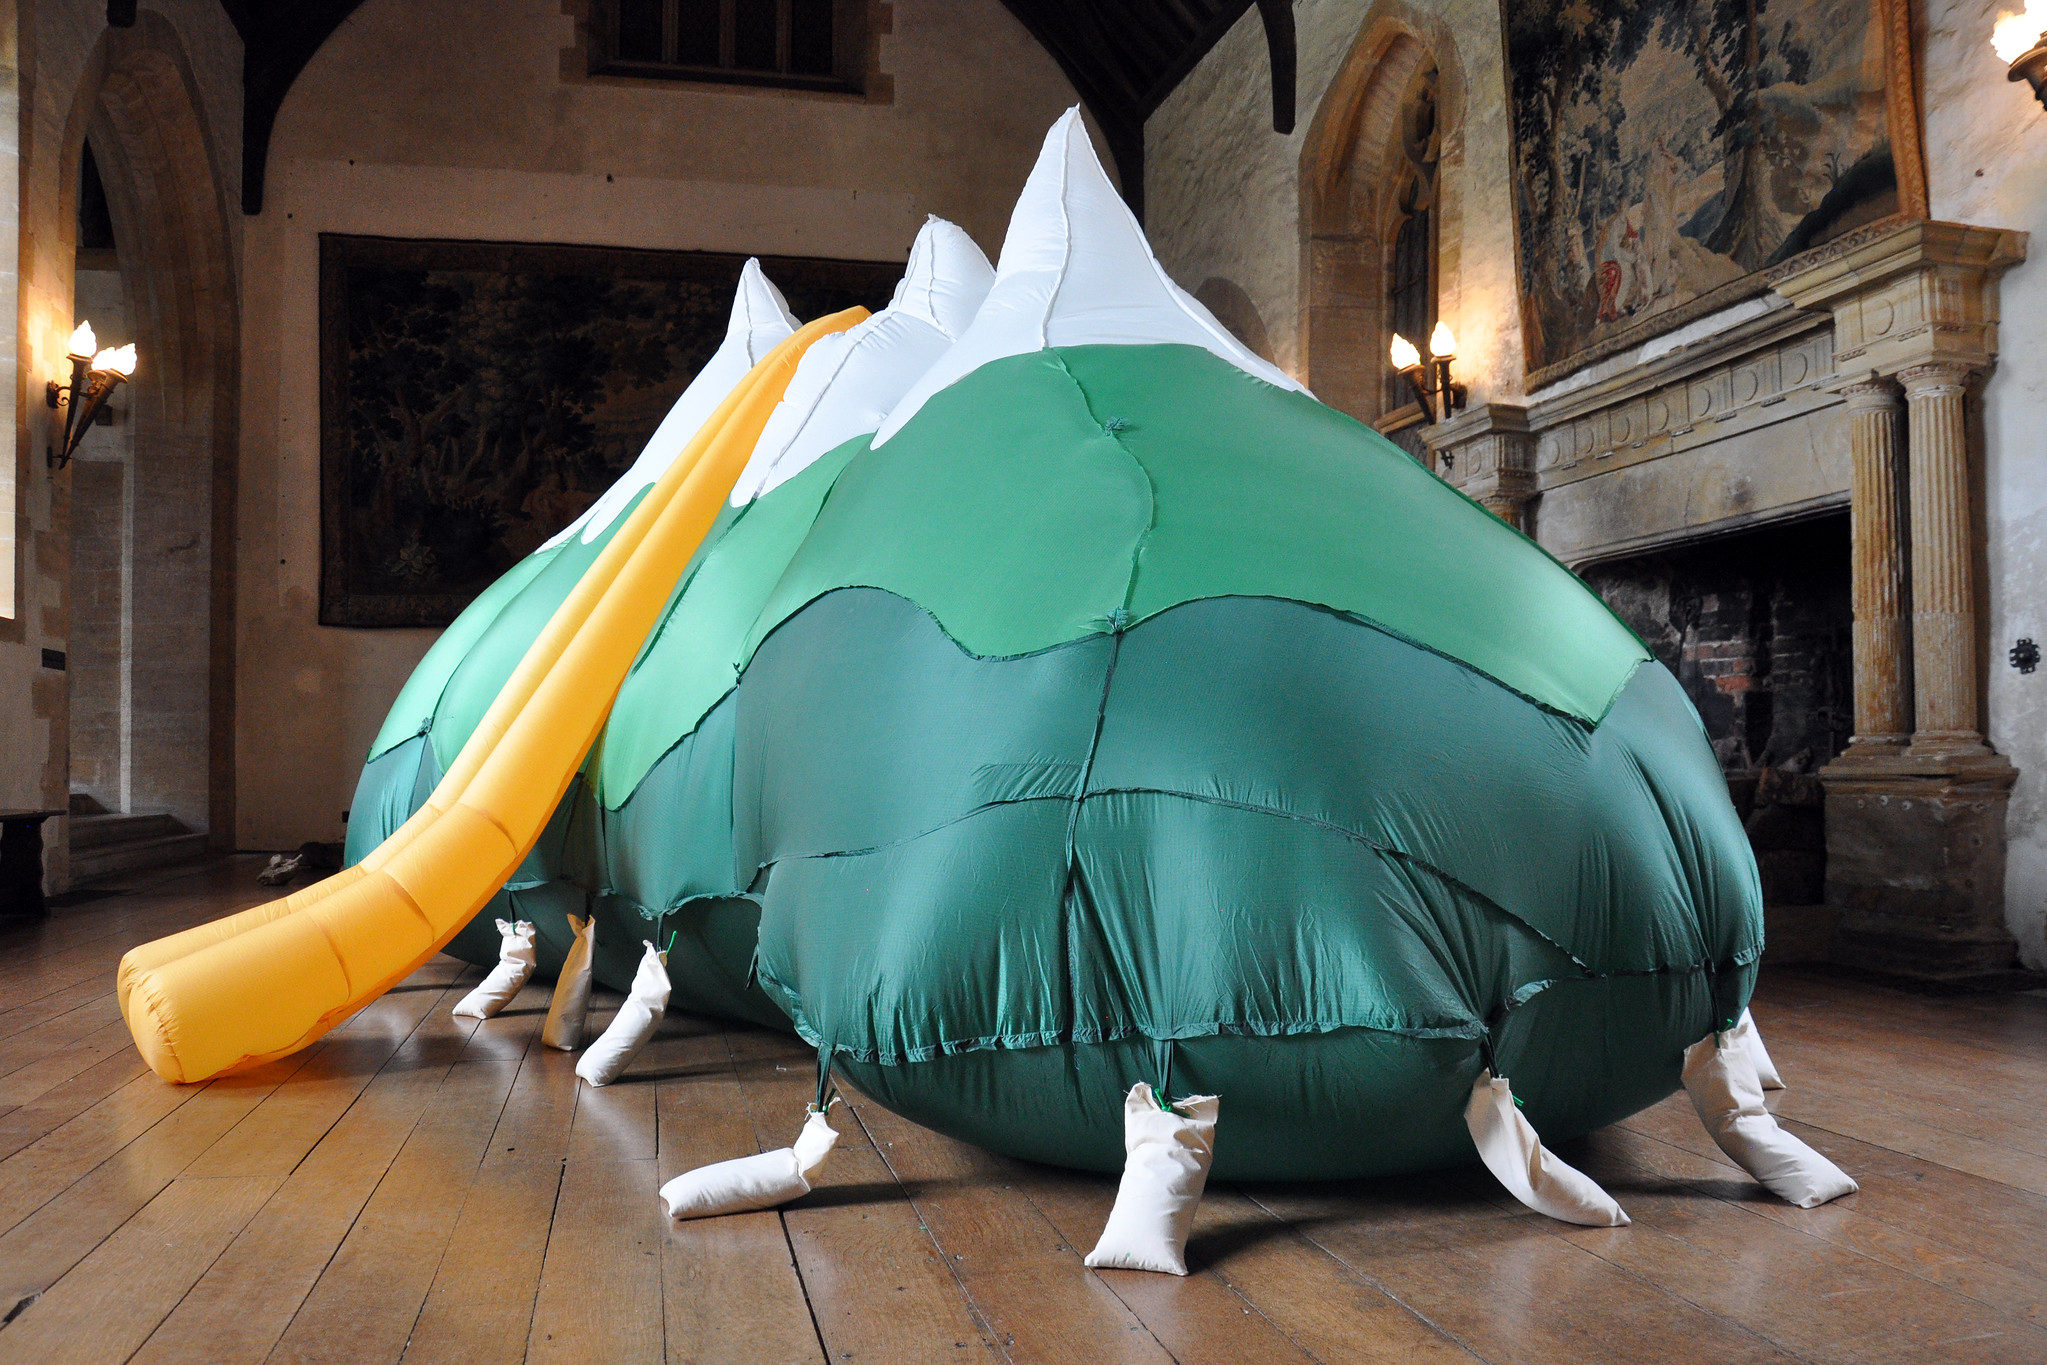 Photograph of inflatable piece of art in a gallery